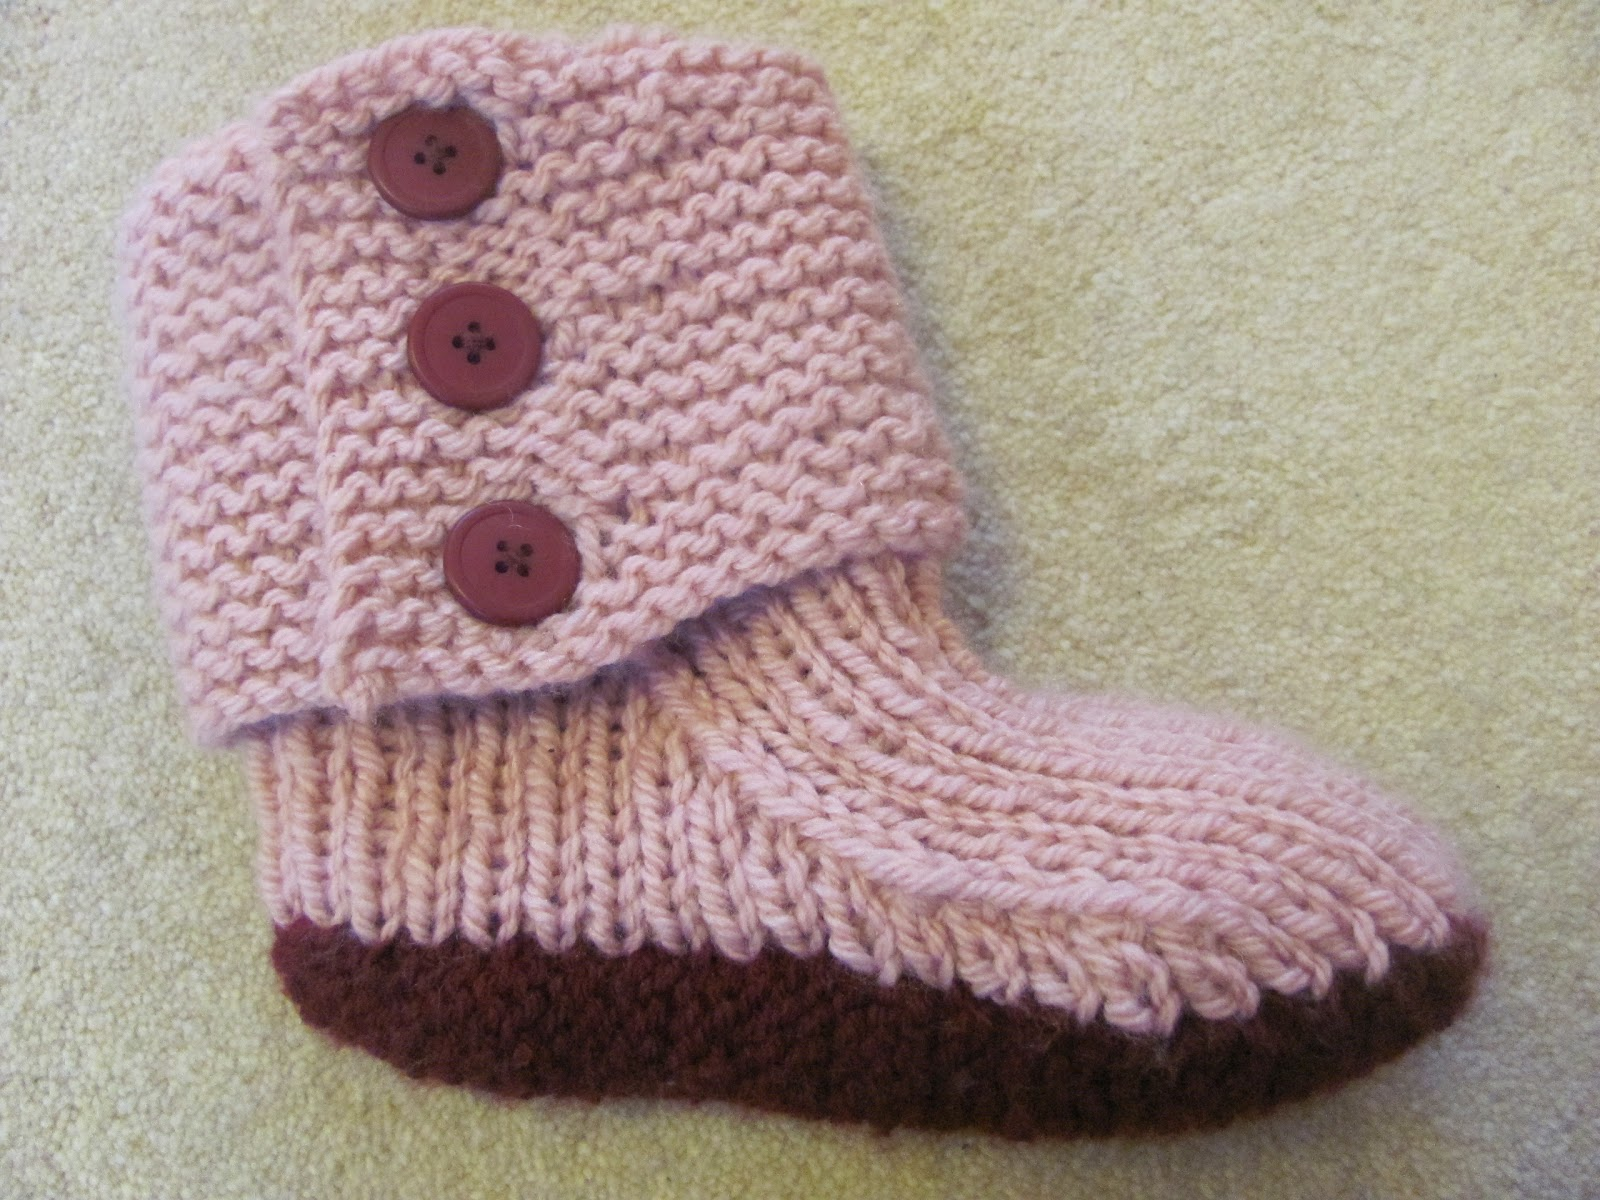 Felted Slippers Knitting Pattern : Slippers Pattern Knitting Patterns Gallery